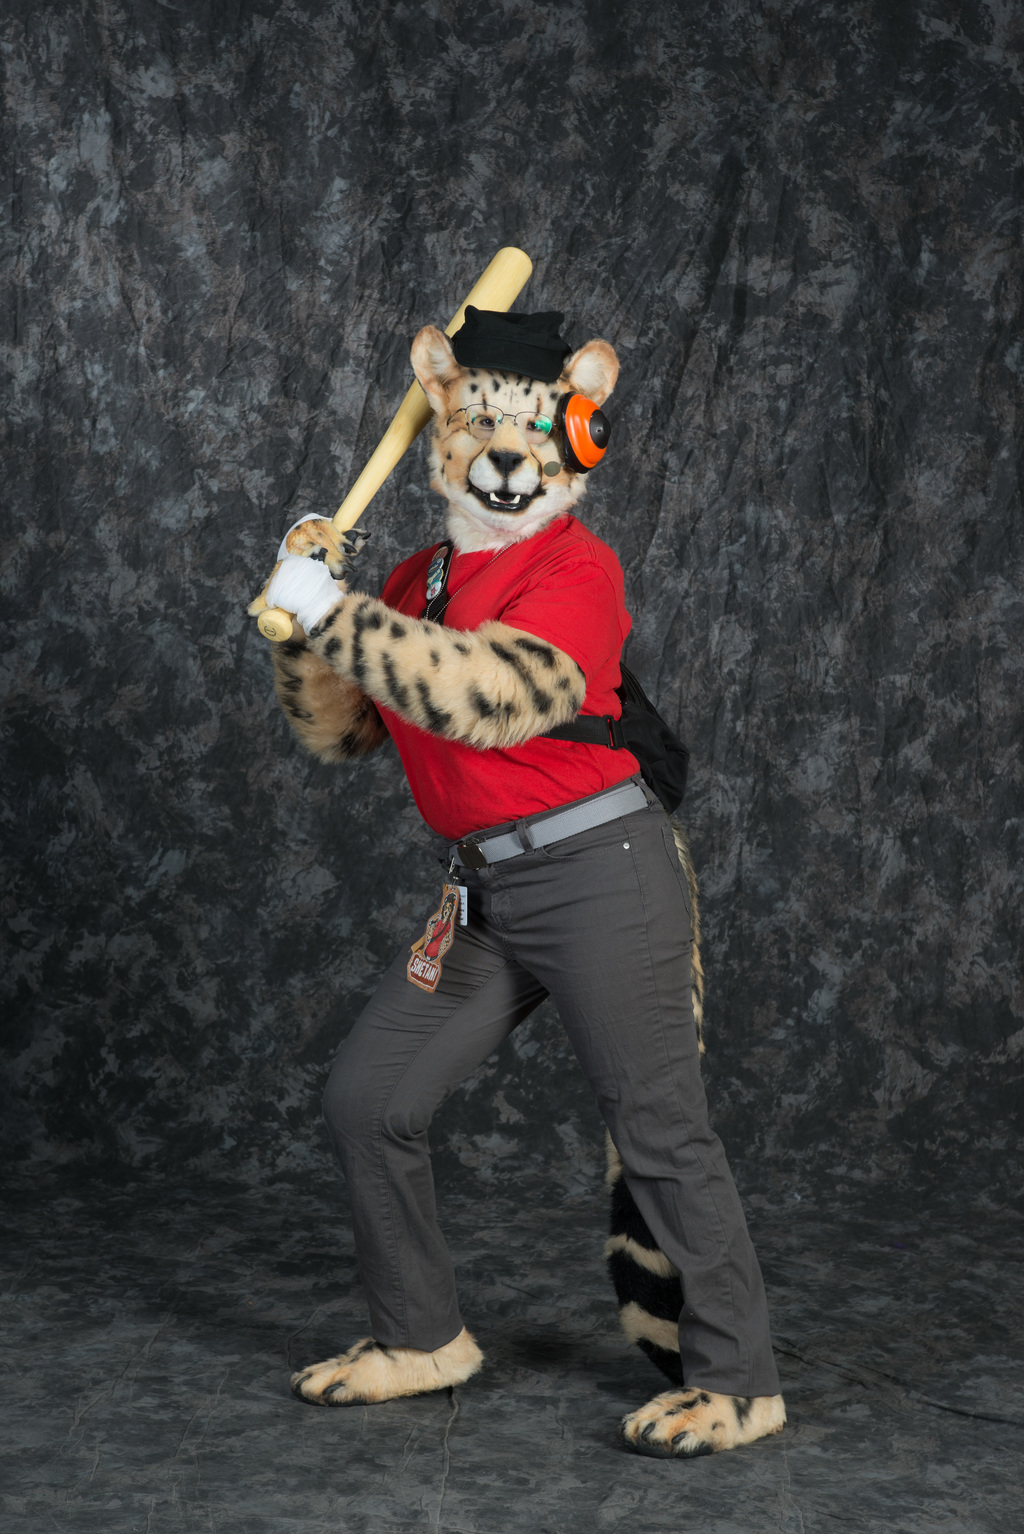 AC 2017: Batter up!